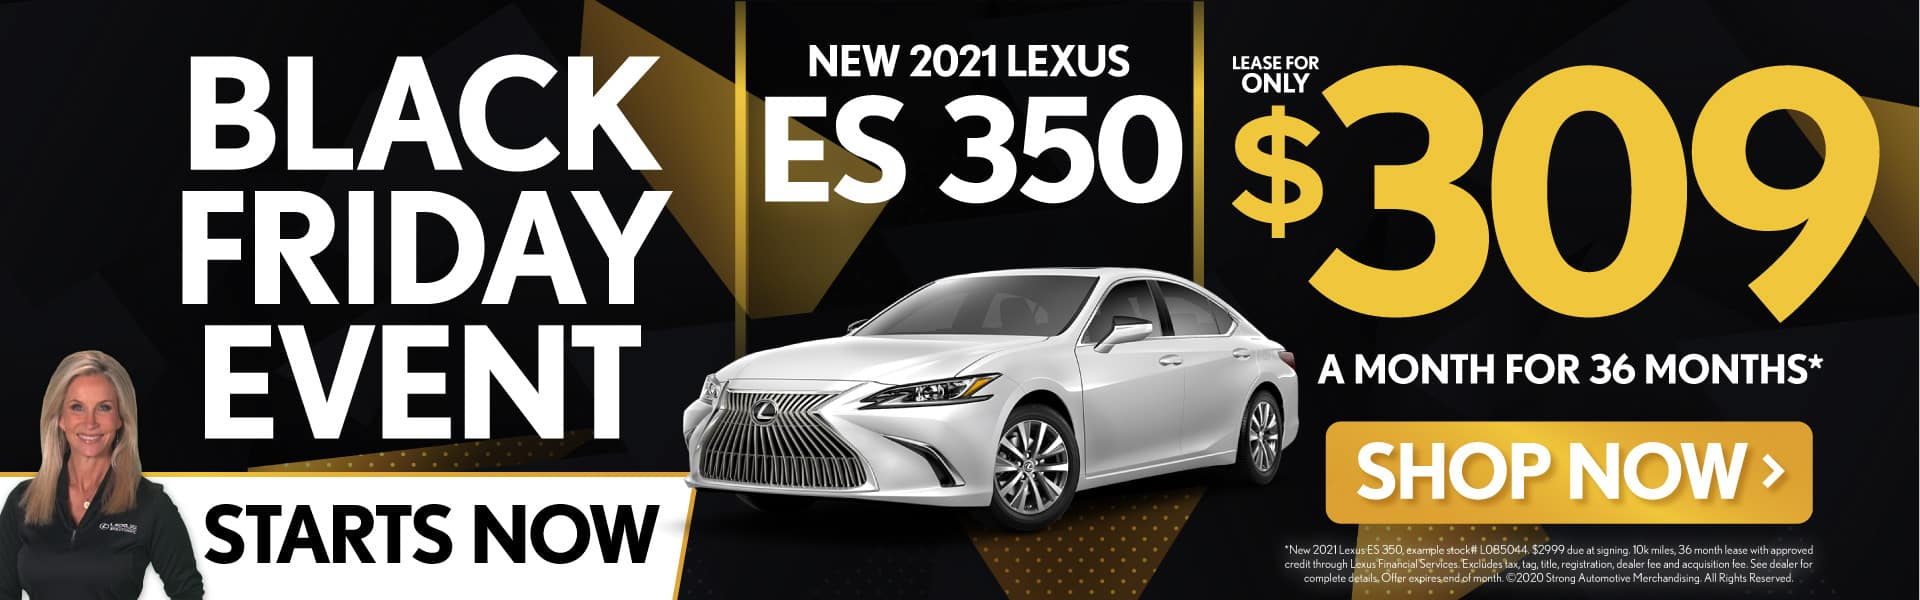 New 2021 Lexus ES 350 only $309/mo - SHOP NOW